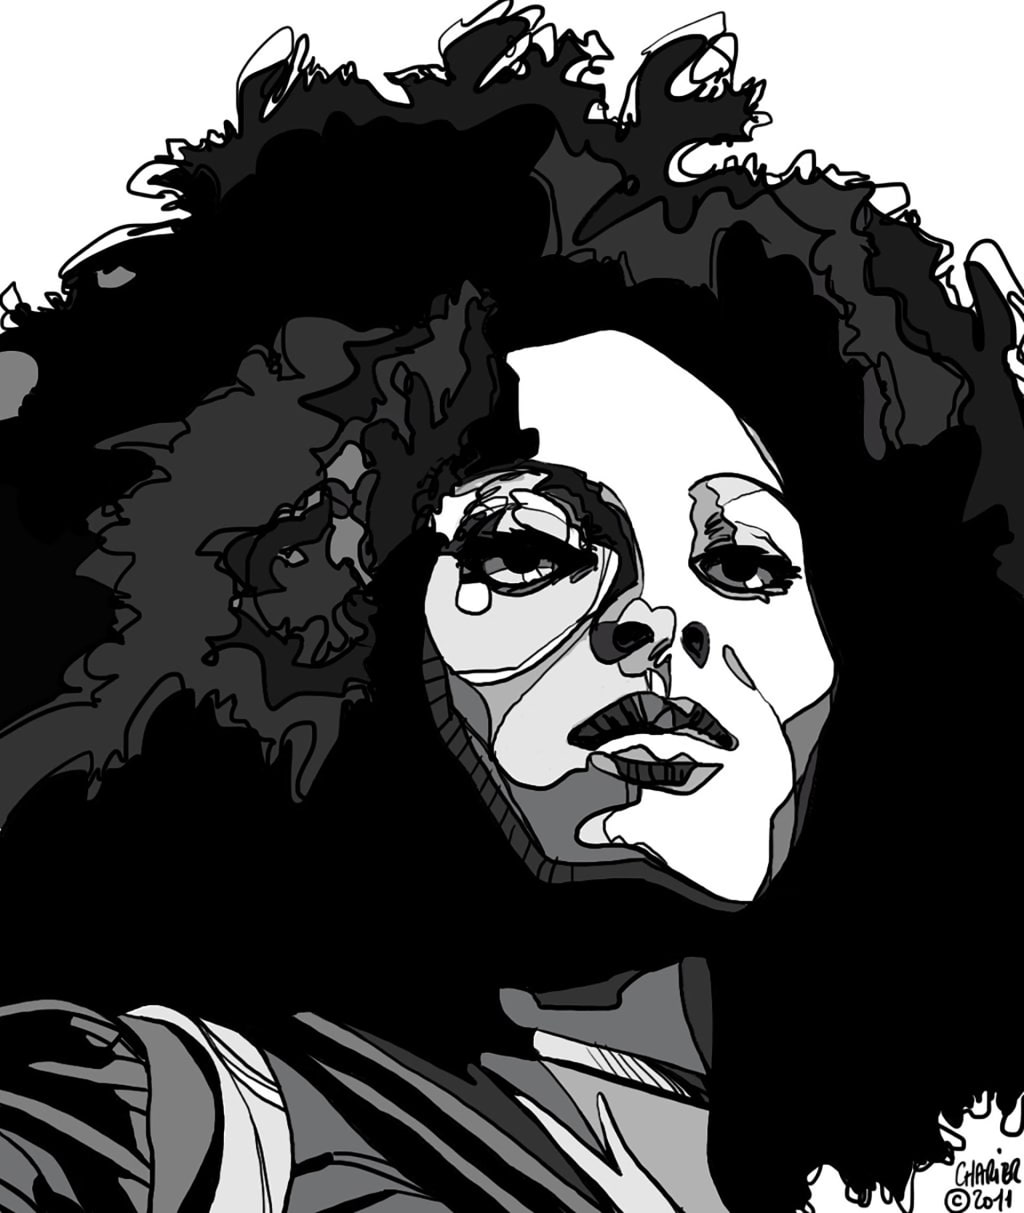 Pam Grier's Best Blaxploitation Films